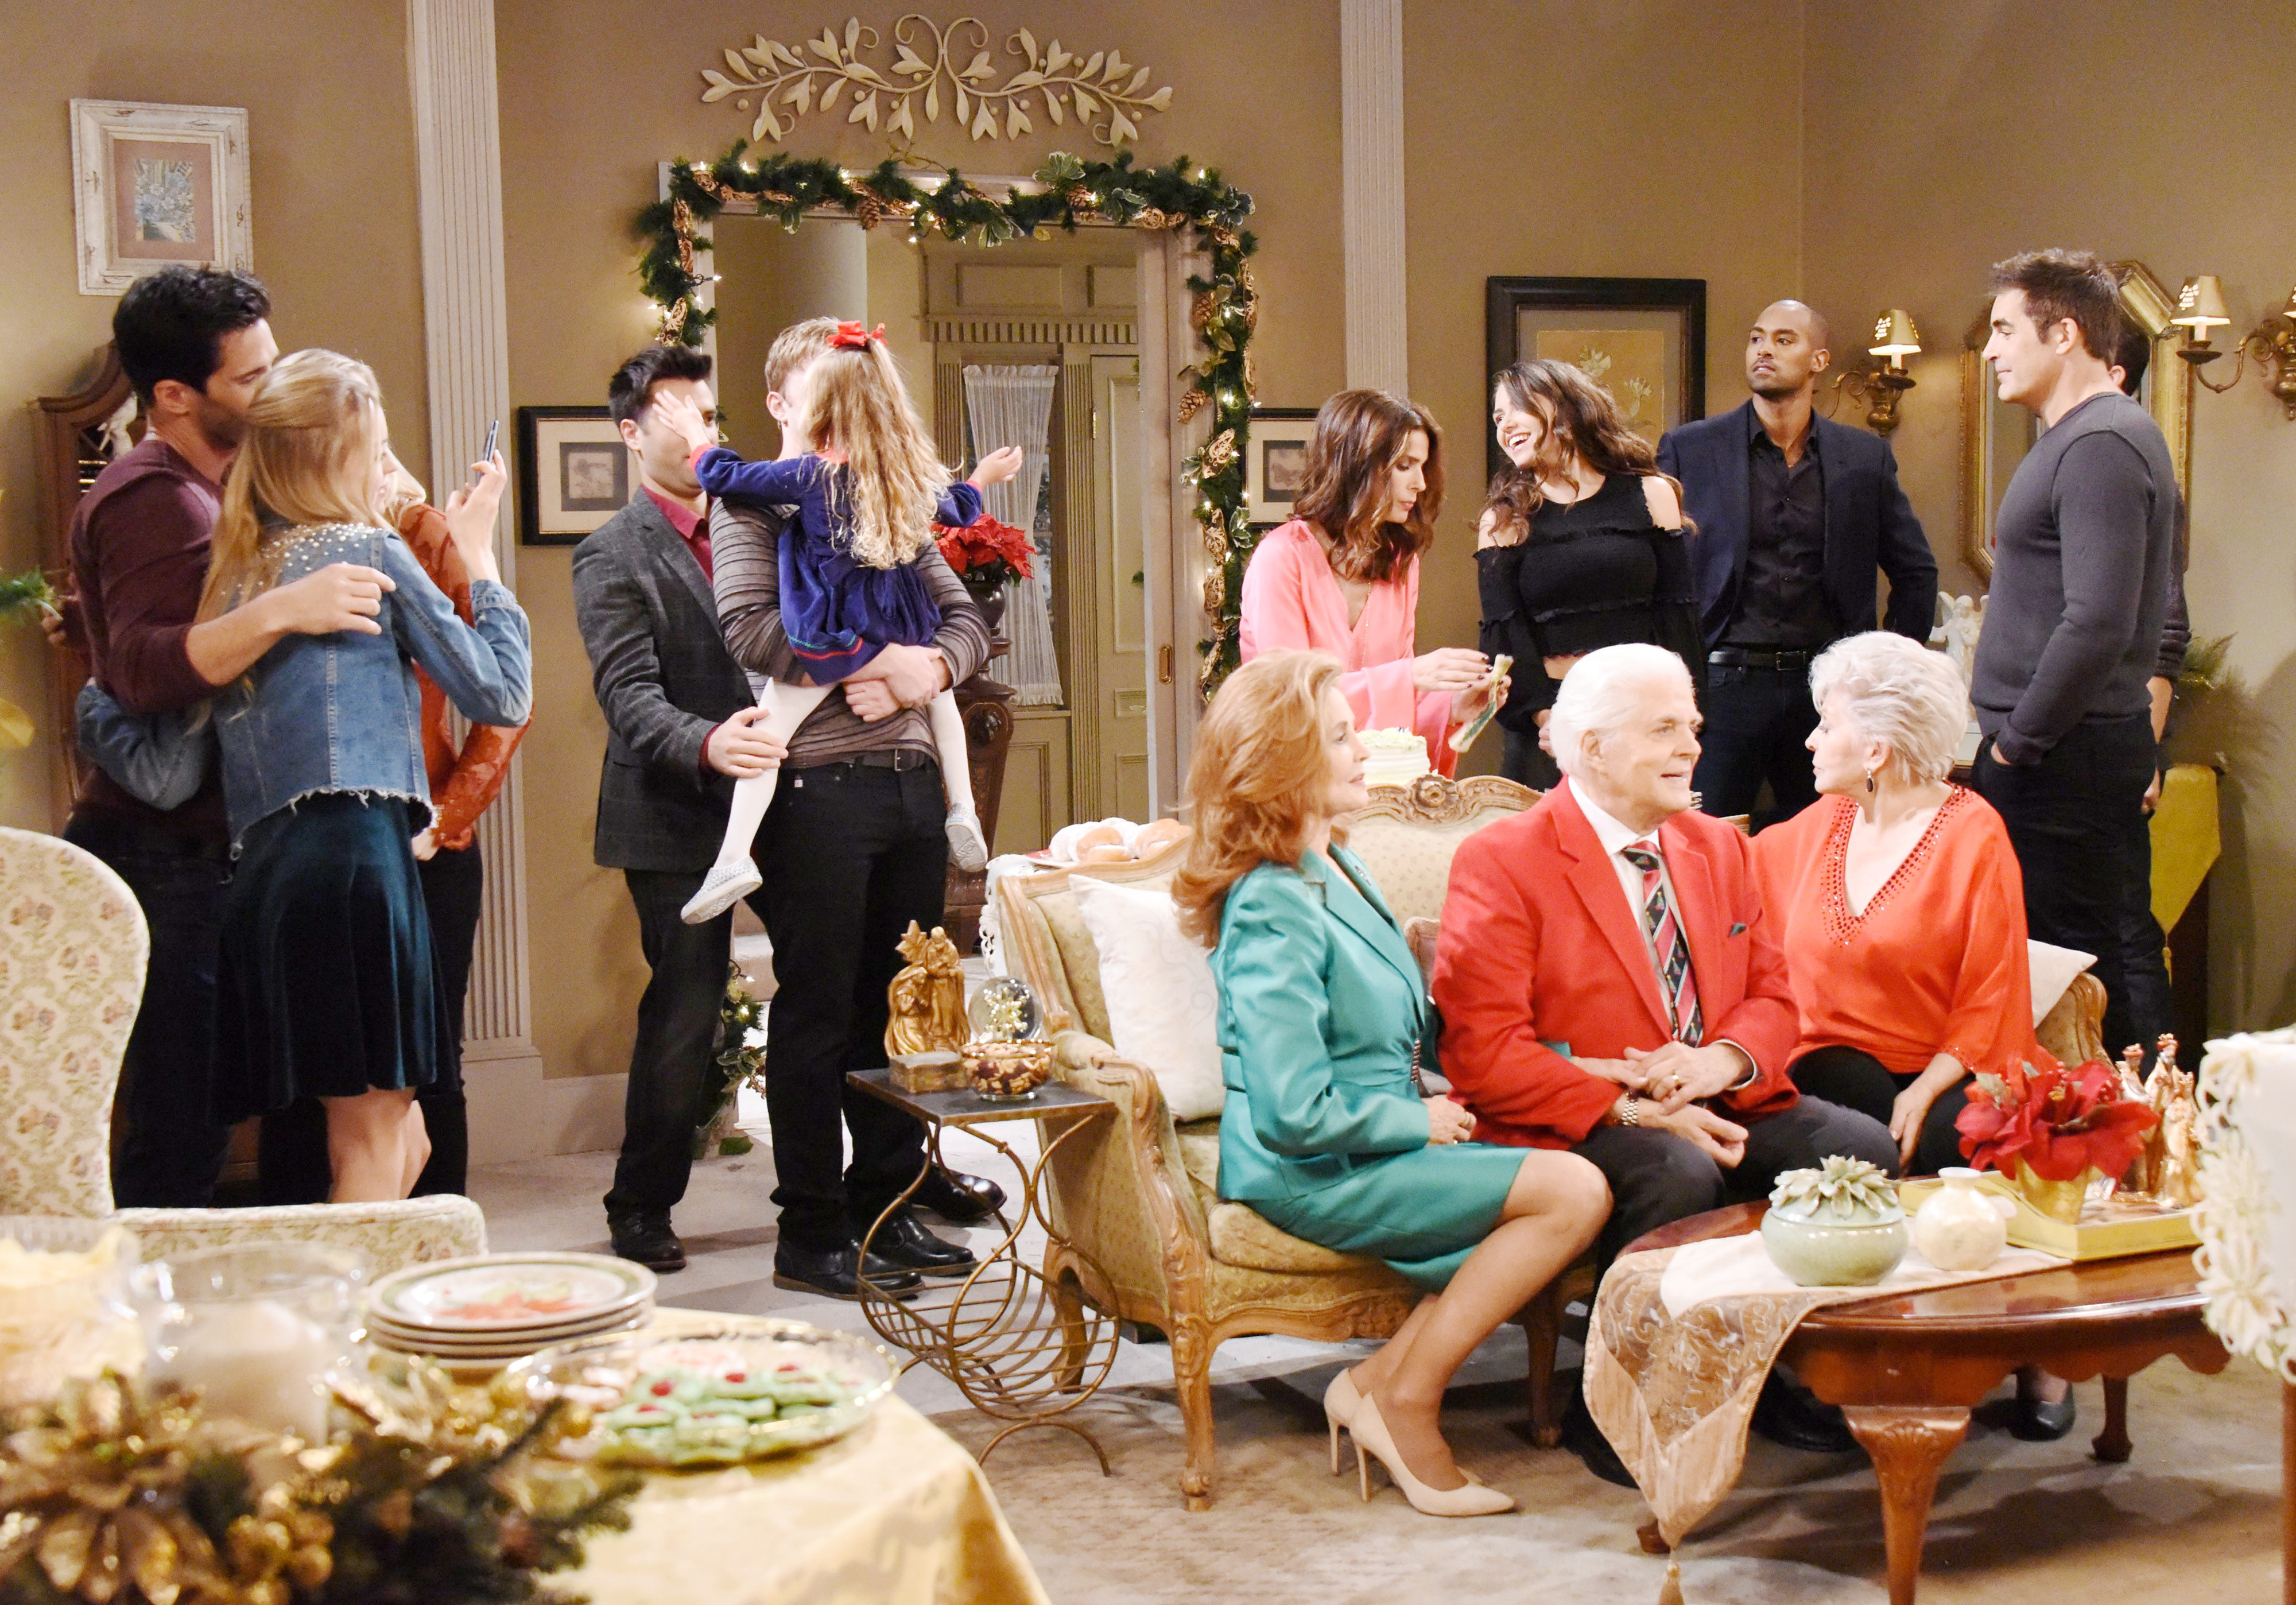 Christmas Day 2021 Days Of Our Lives Days Of Our Lives Spoilers Coming Up December 25th December 29th Globaltv